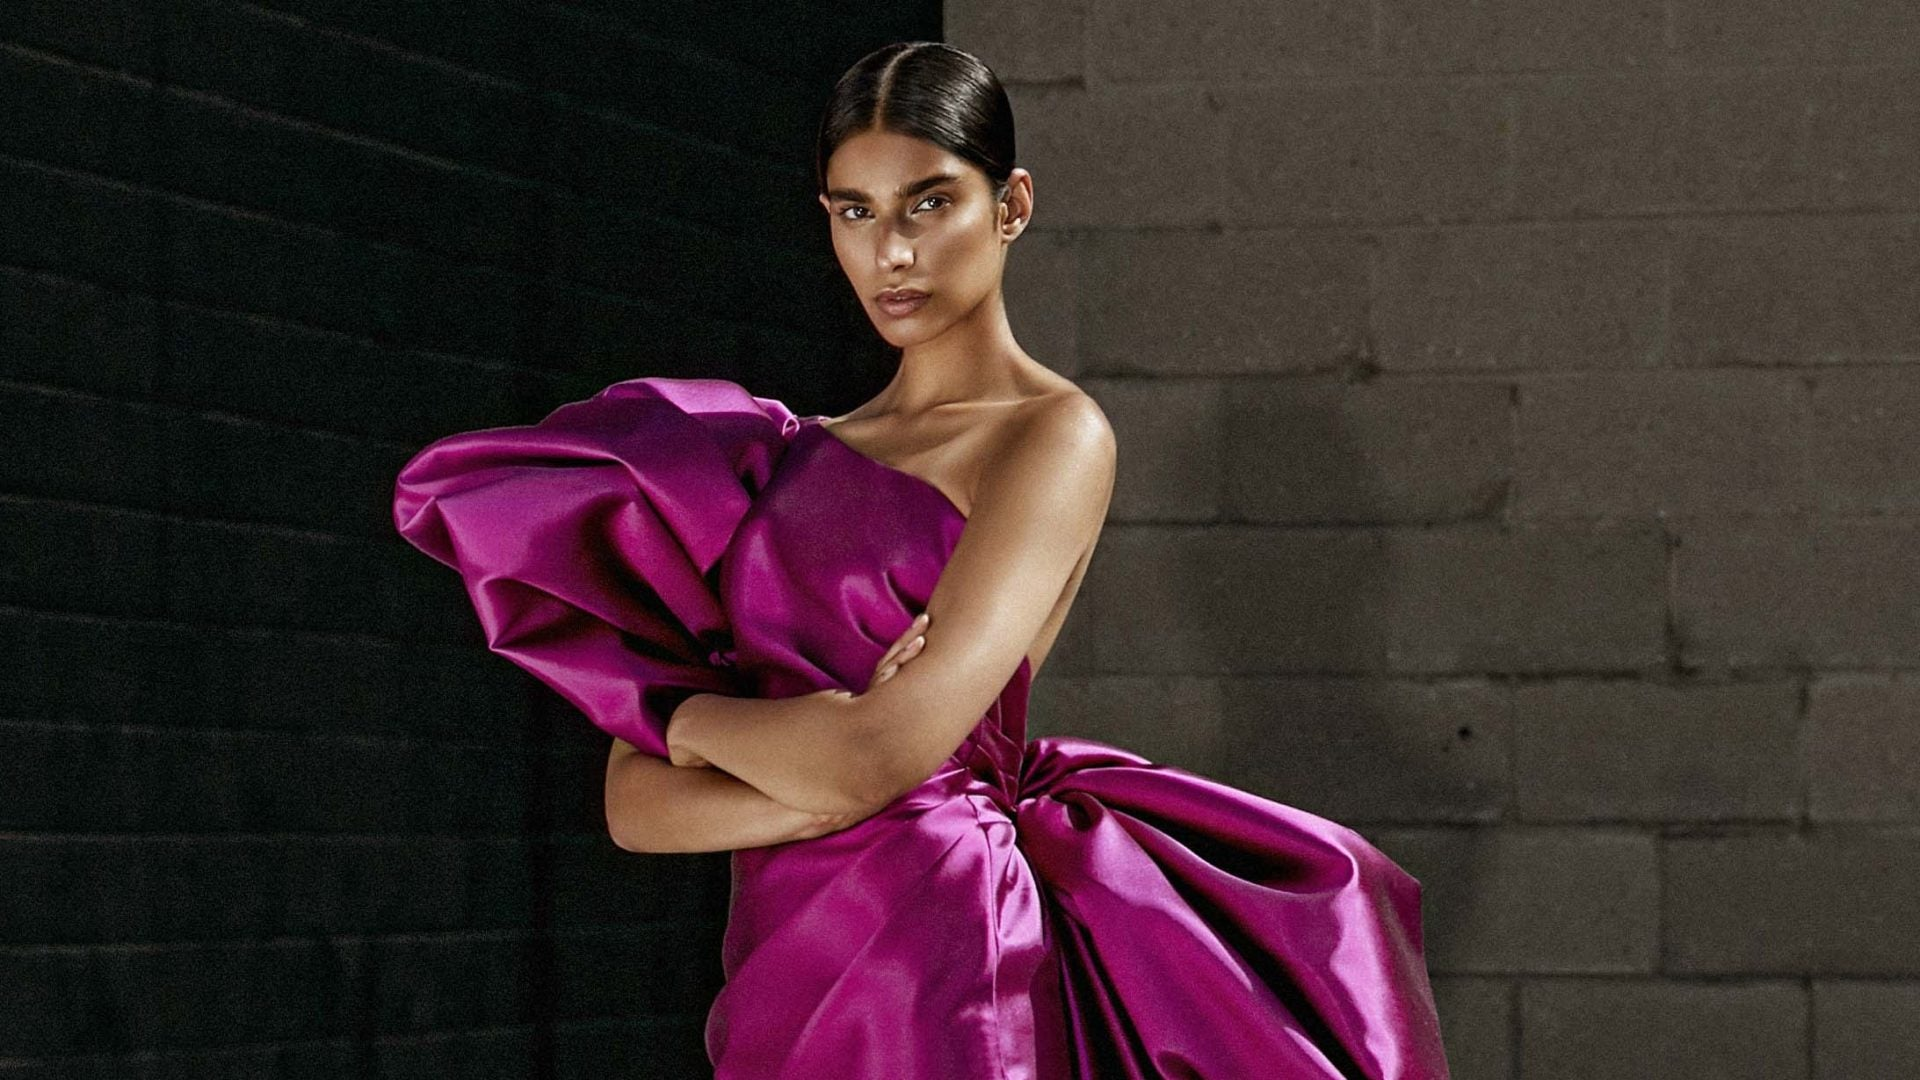 NYFW: Greta Constantine Is Having A Long-Running Career In The Fashion Industry